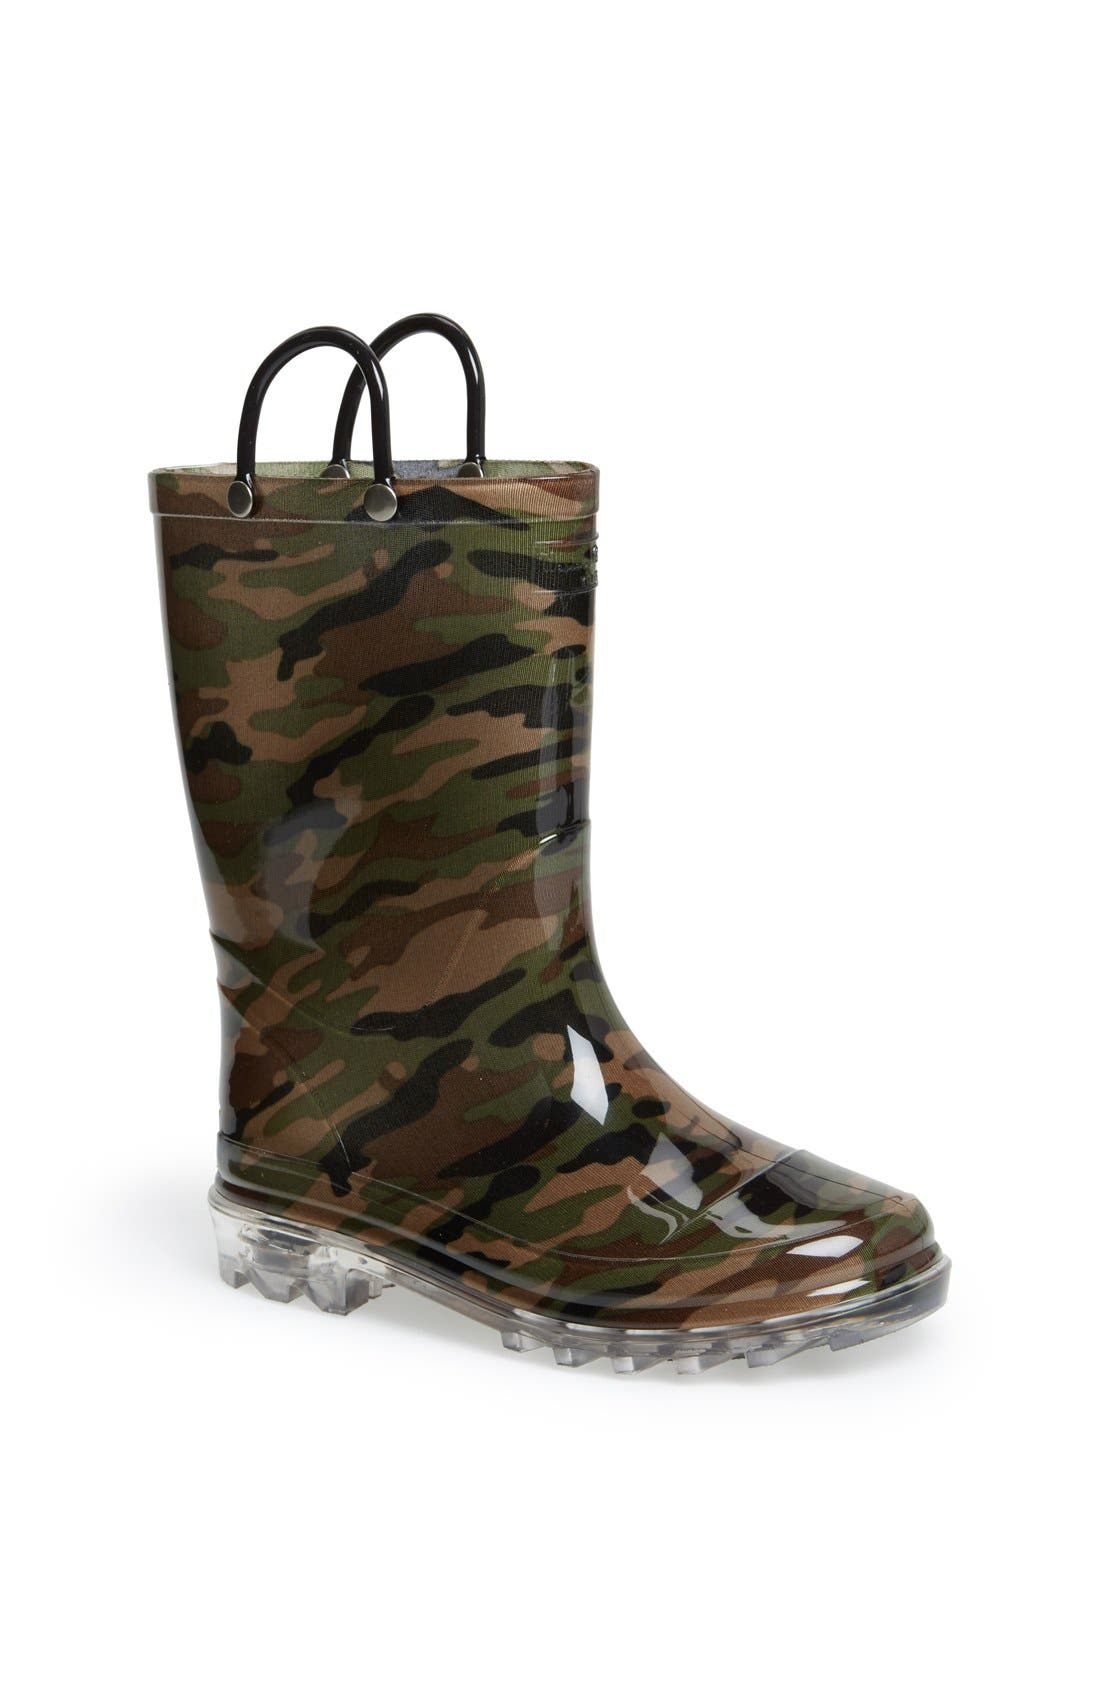 Western Chief 'Camo' Light-Up Rain Boot (Toddler & Little Kid)